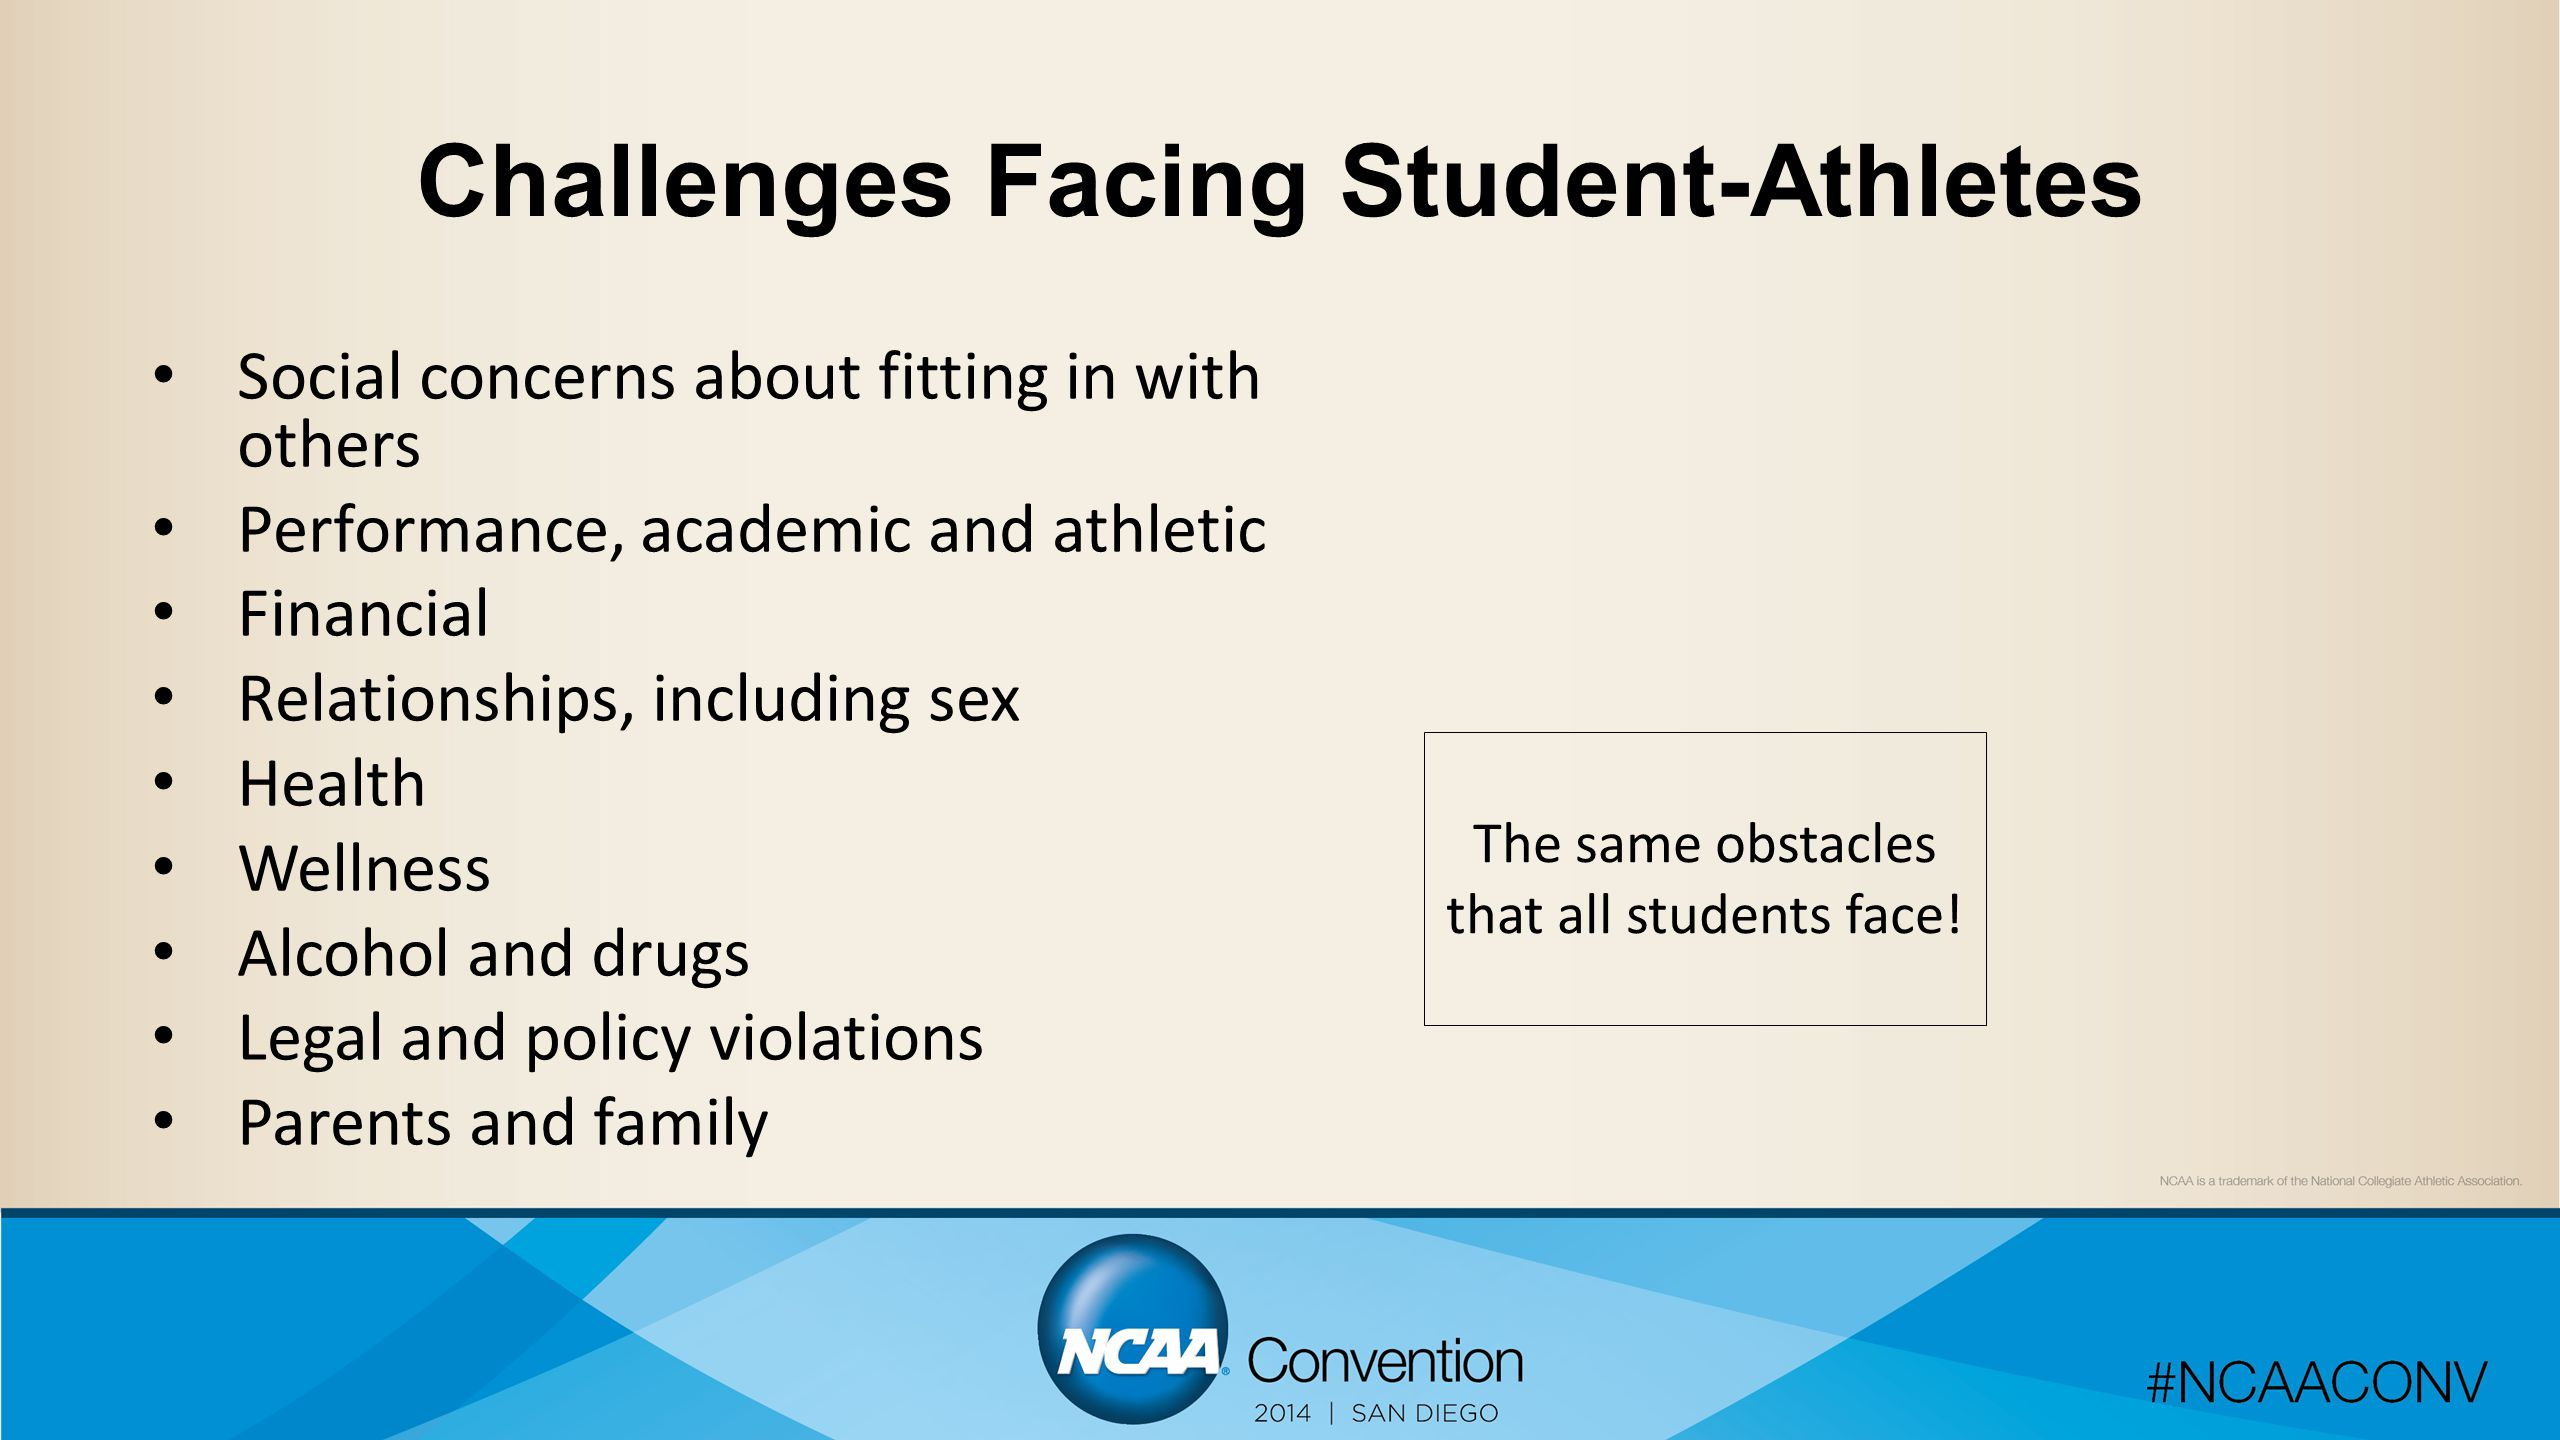 Challenges Facing Student-Athletes Social concerns about fitting in with others Performance, academic and athletic Financial Relationships, including sex Health Wellness Alcohol and drugs Legal and policy violations Parents and family The same obstacles that all students face!